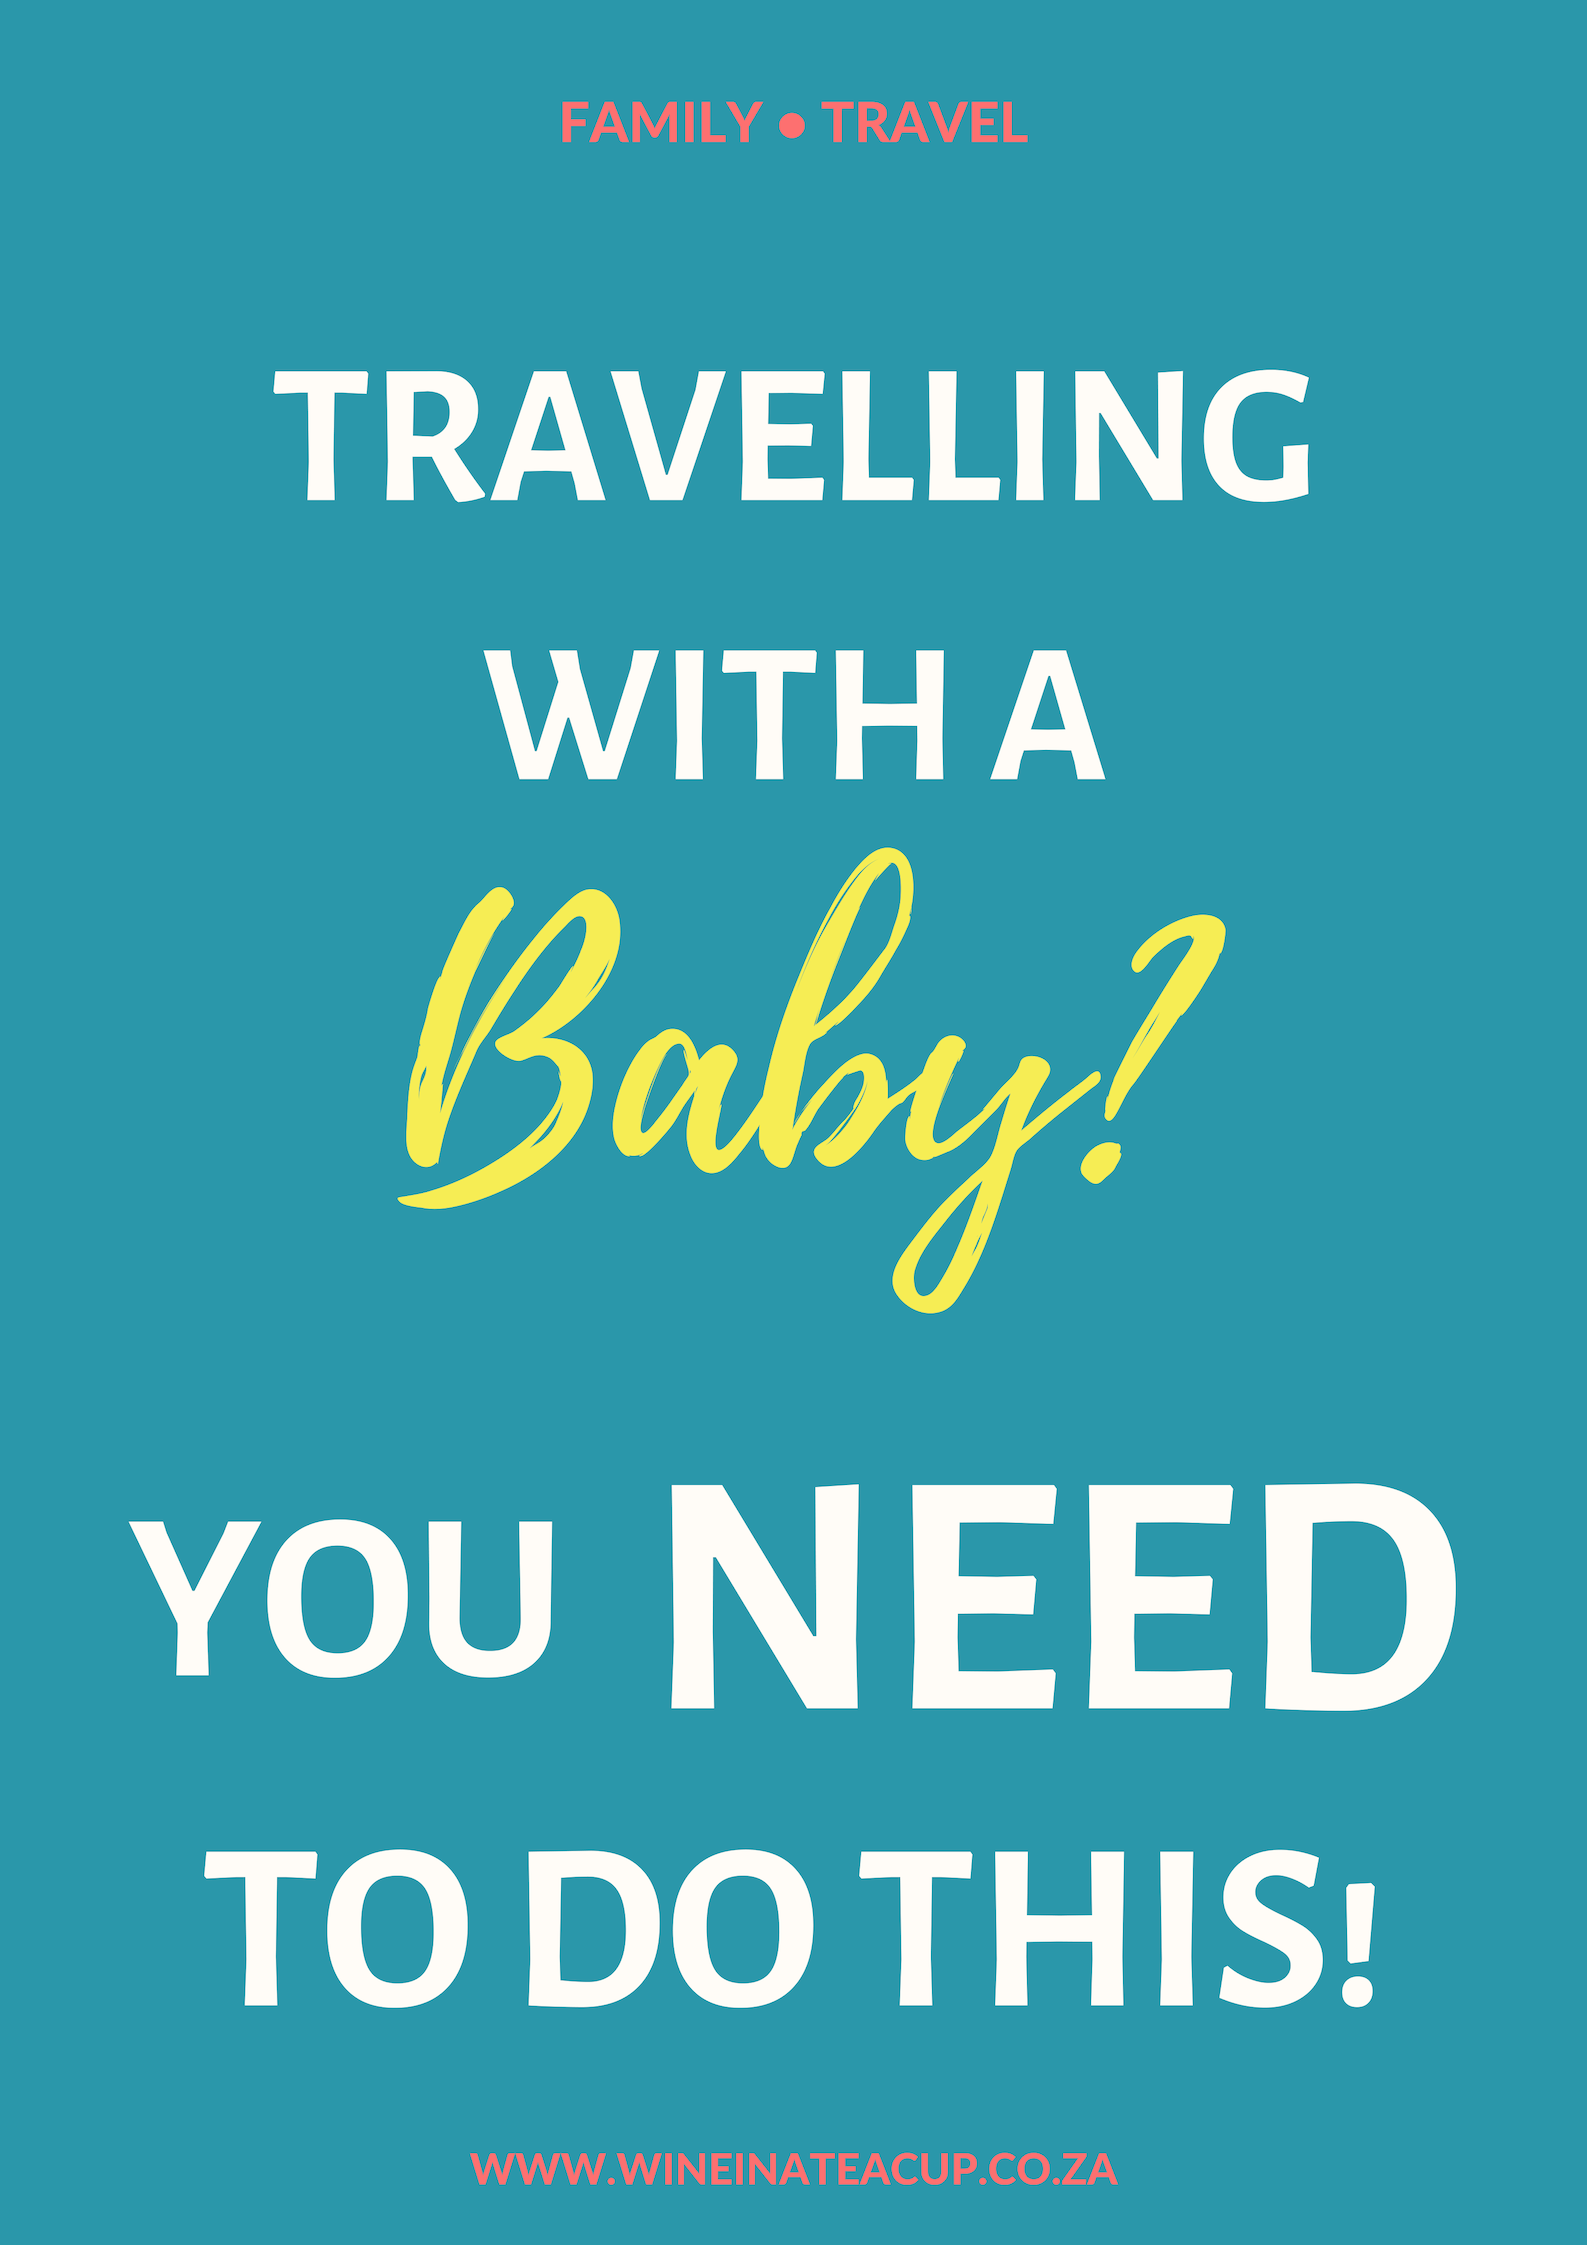 Travelling with a baby? You NEED to do this! Stay sane on the plane with this top tip. #travelling #traveling #flyingwithkids #infanttravel